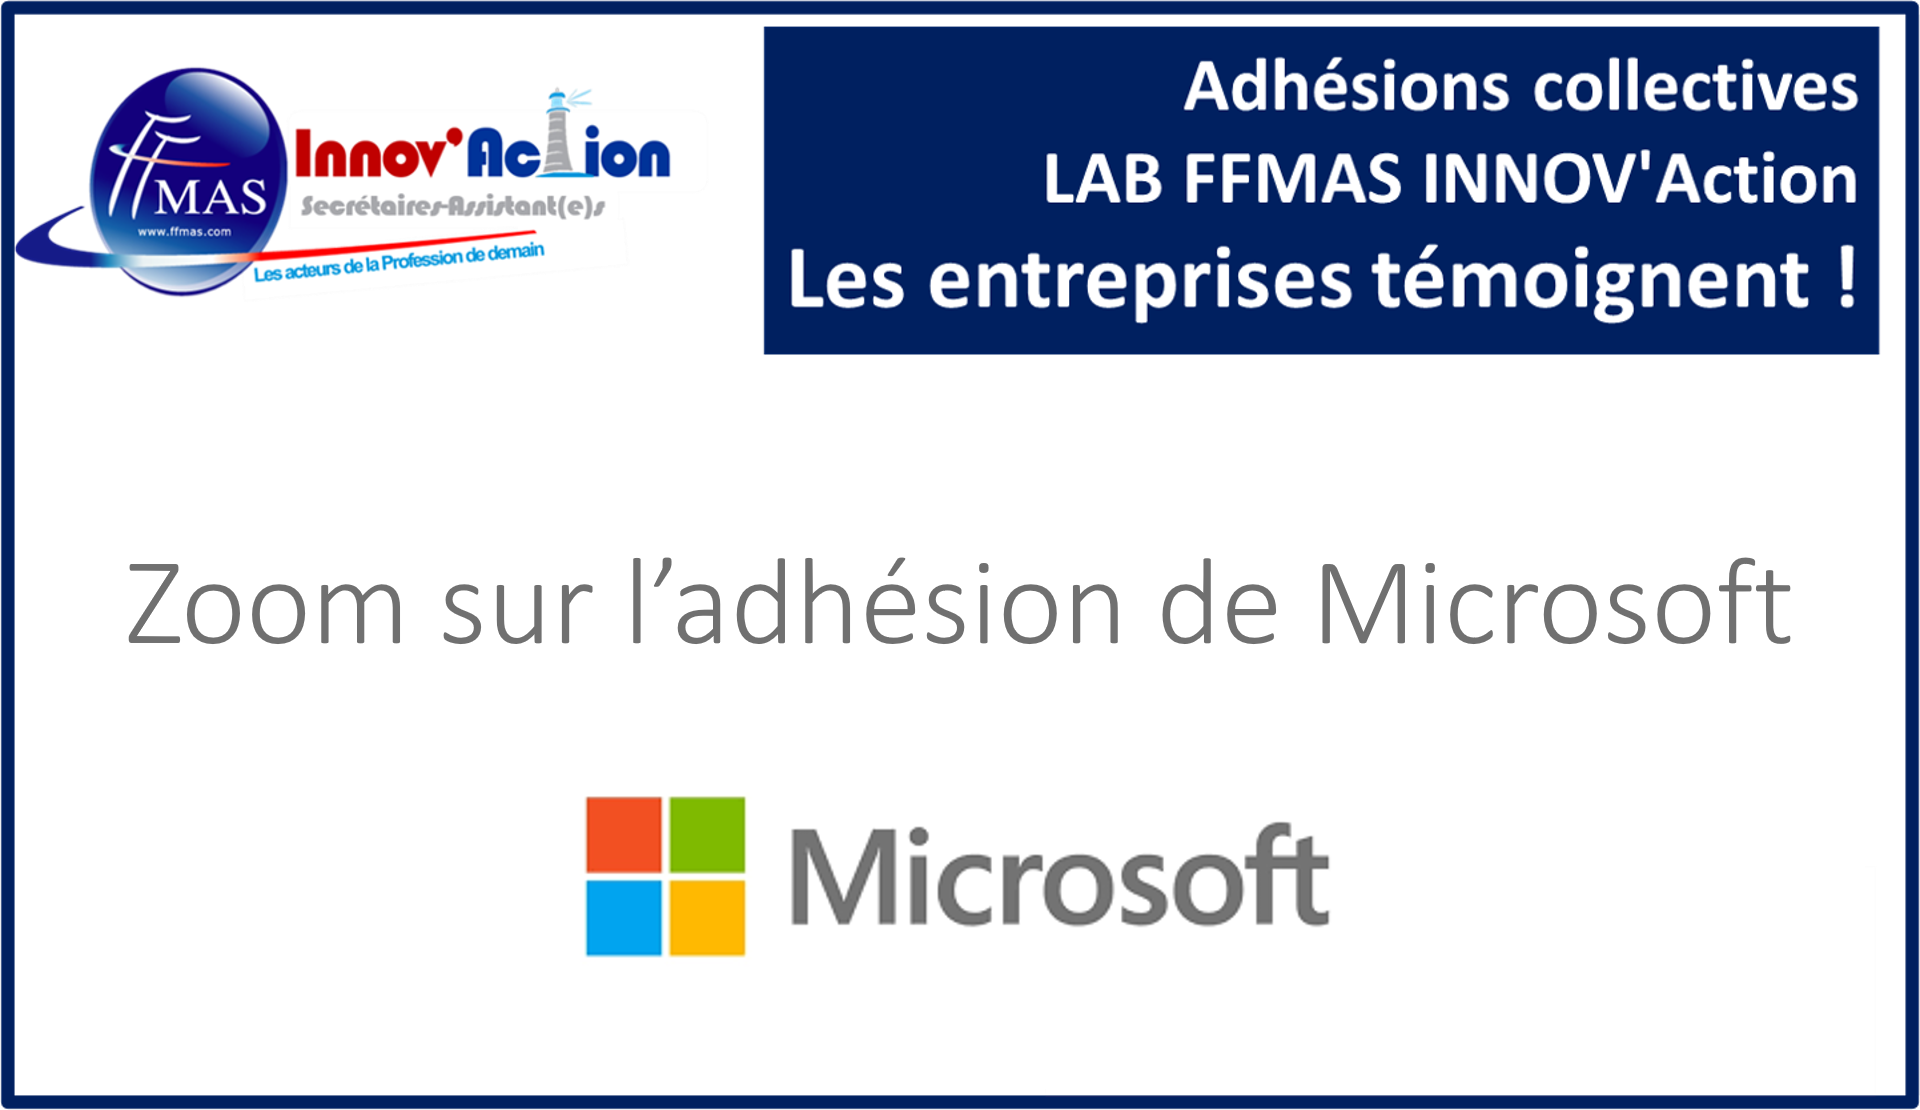 You are currently viewing Adhésions collectives FFMAS INNOV'Action : les entreprises témoignent ! ZOOM sur MICROSOFT